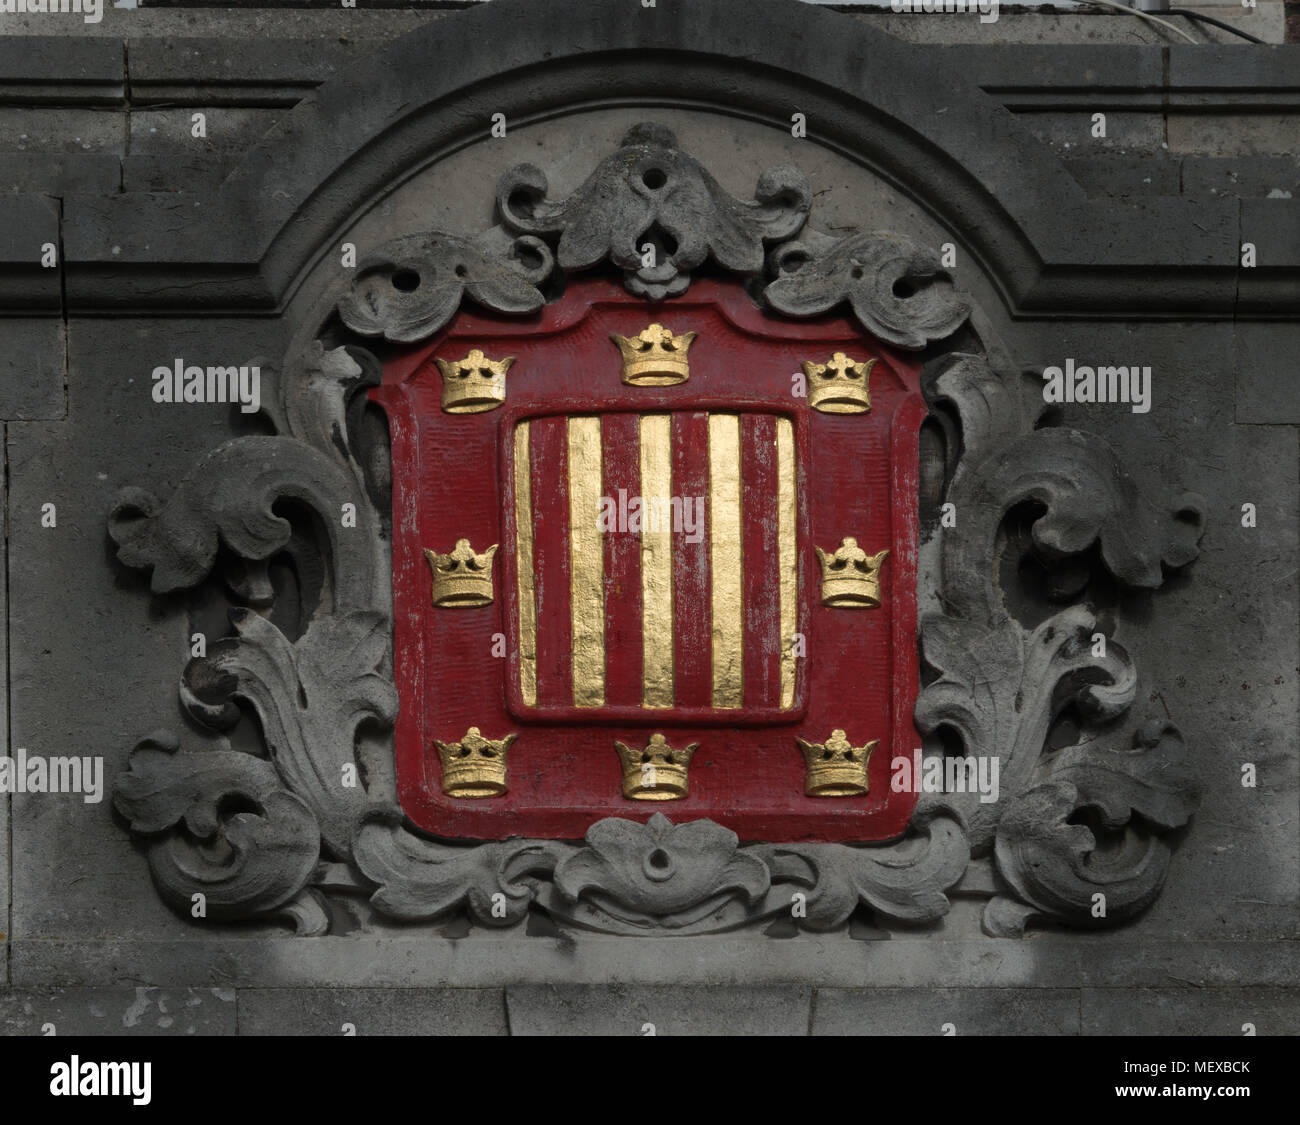 Crest or Coat of Arms over Peterhouse College, Cambridge University - Stock Image